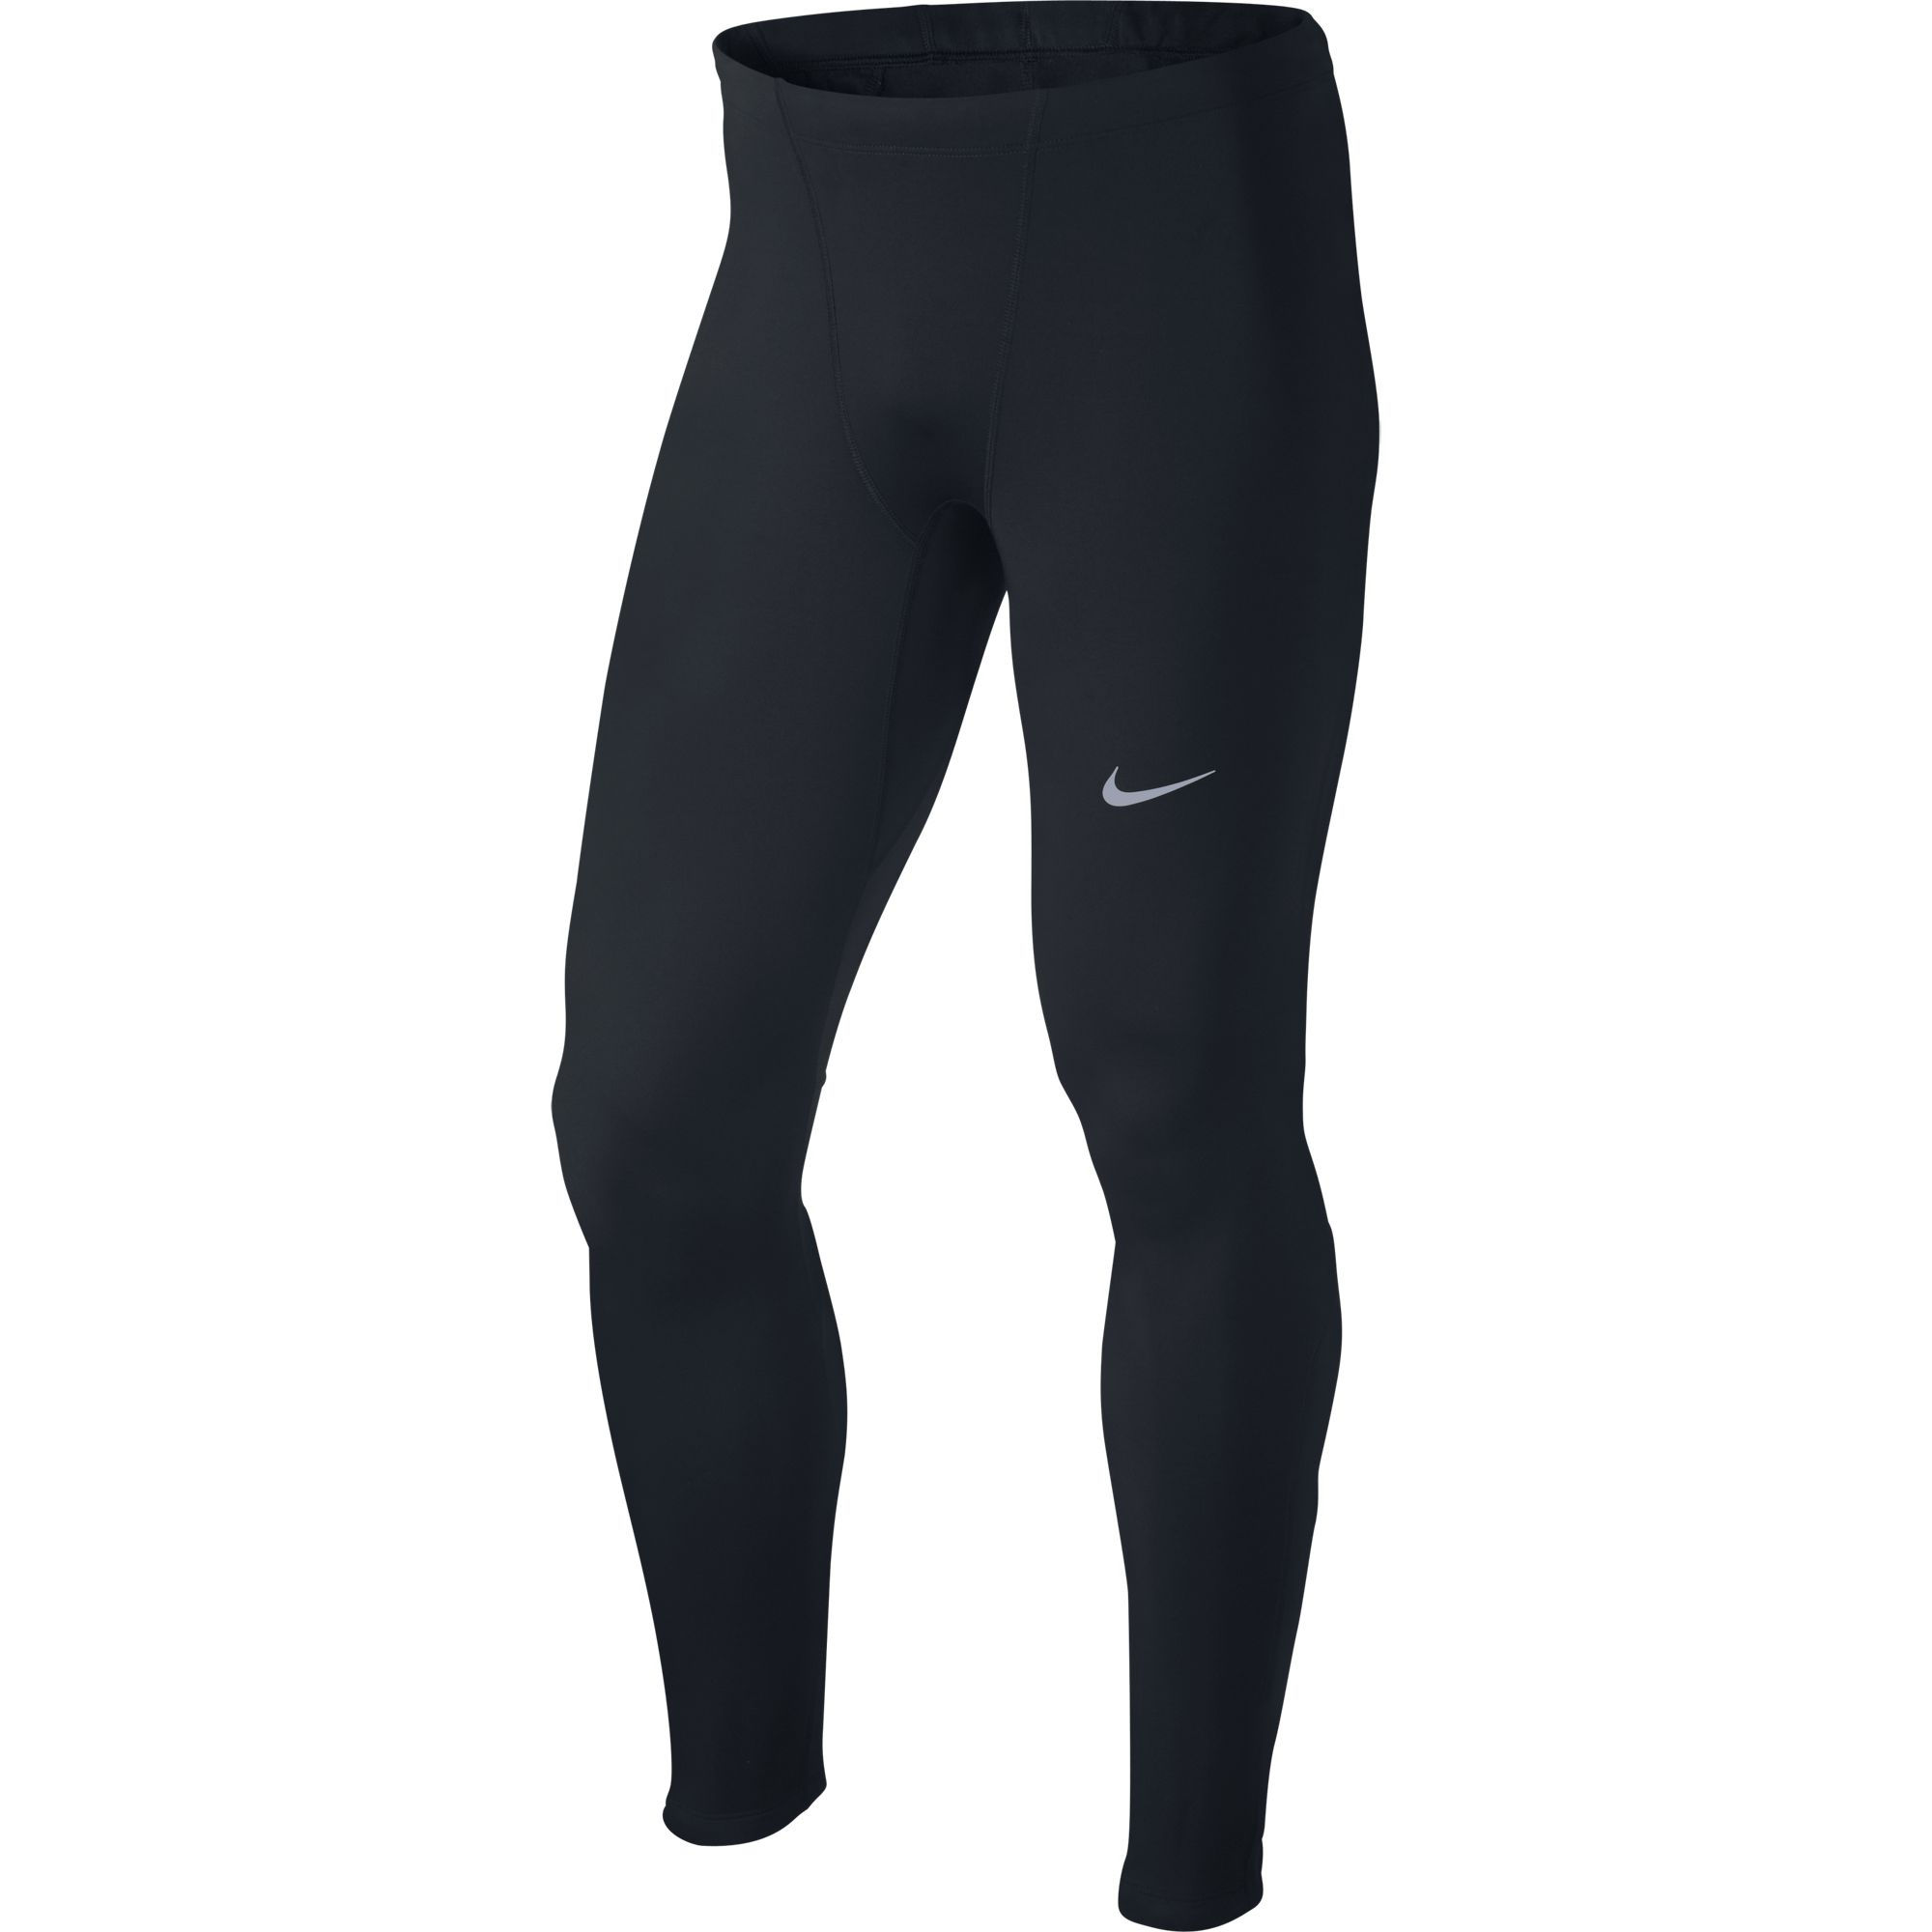 Wiggle Nike Dri Fit Thermal Tight Ho15 Running Tights